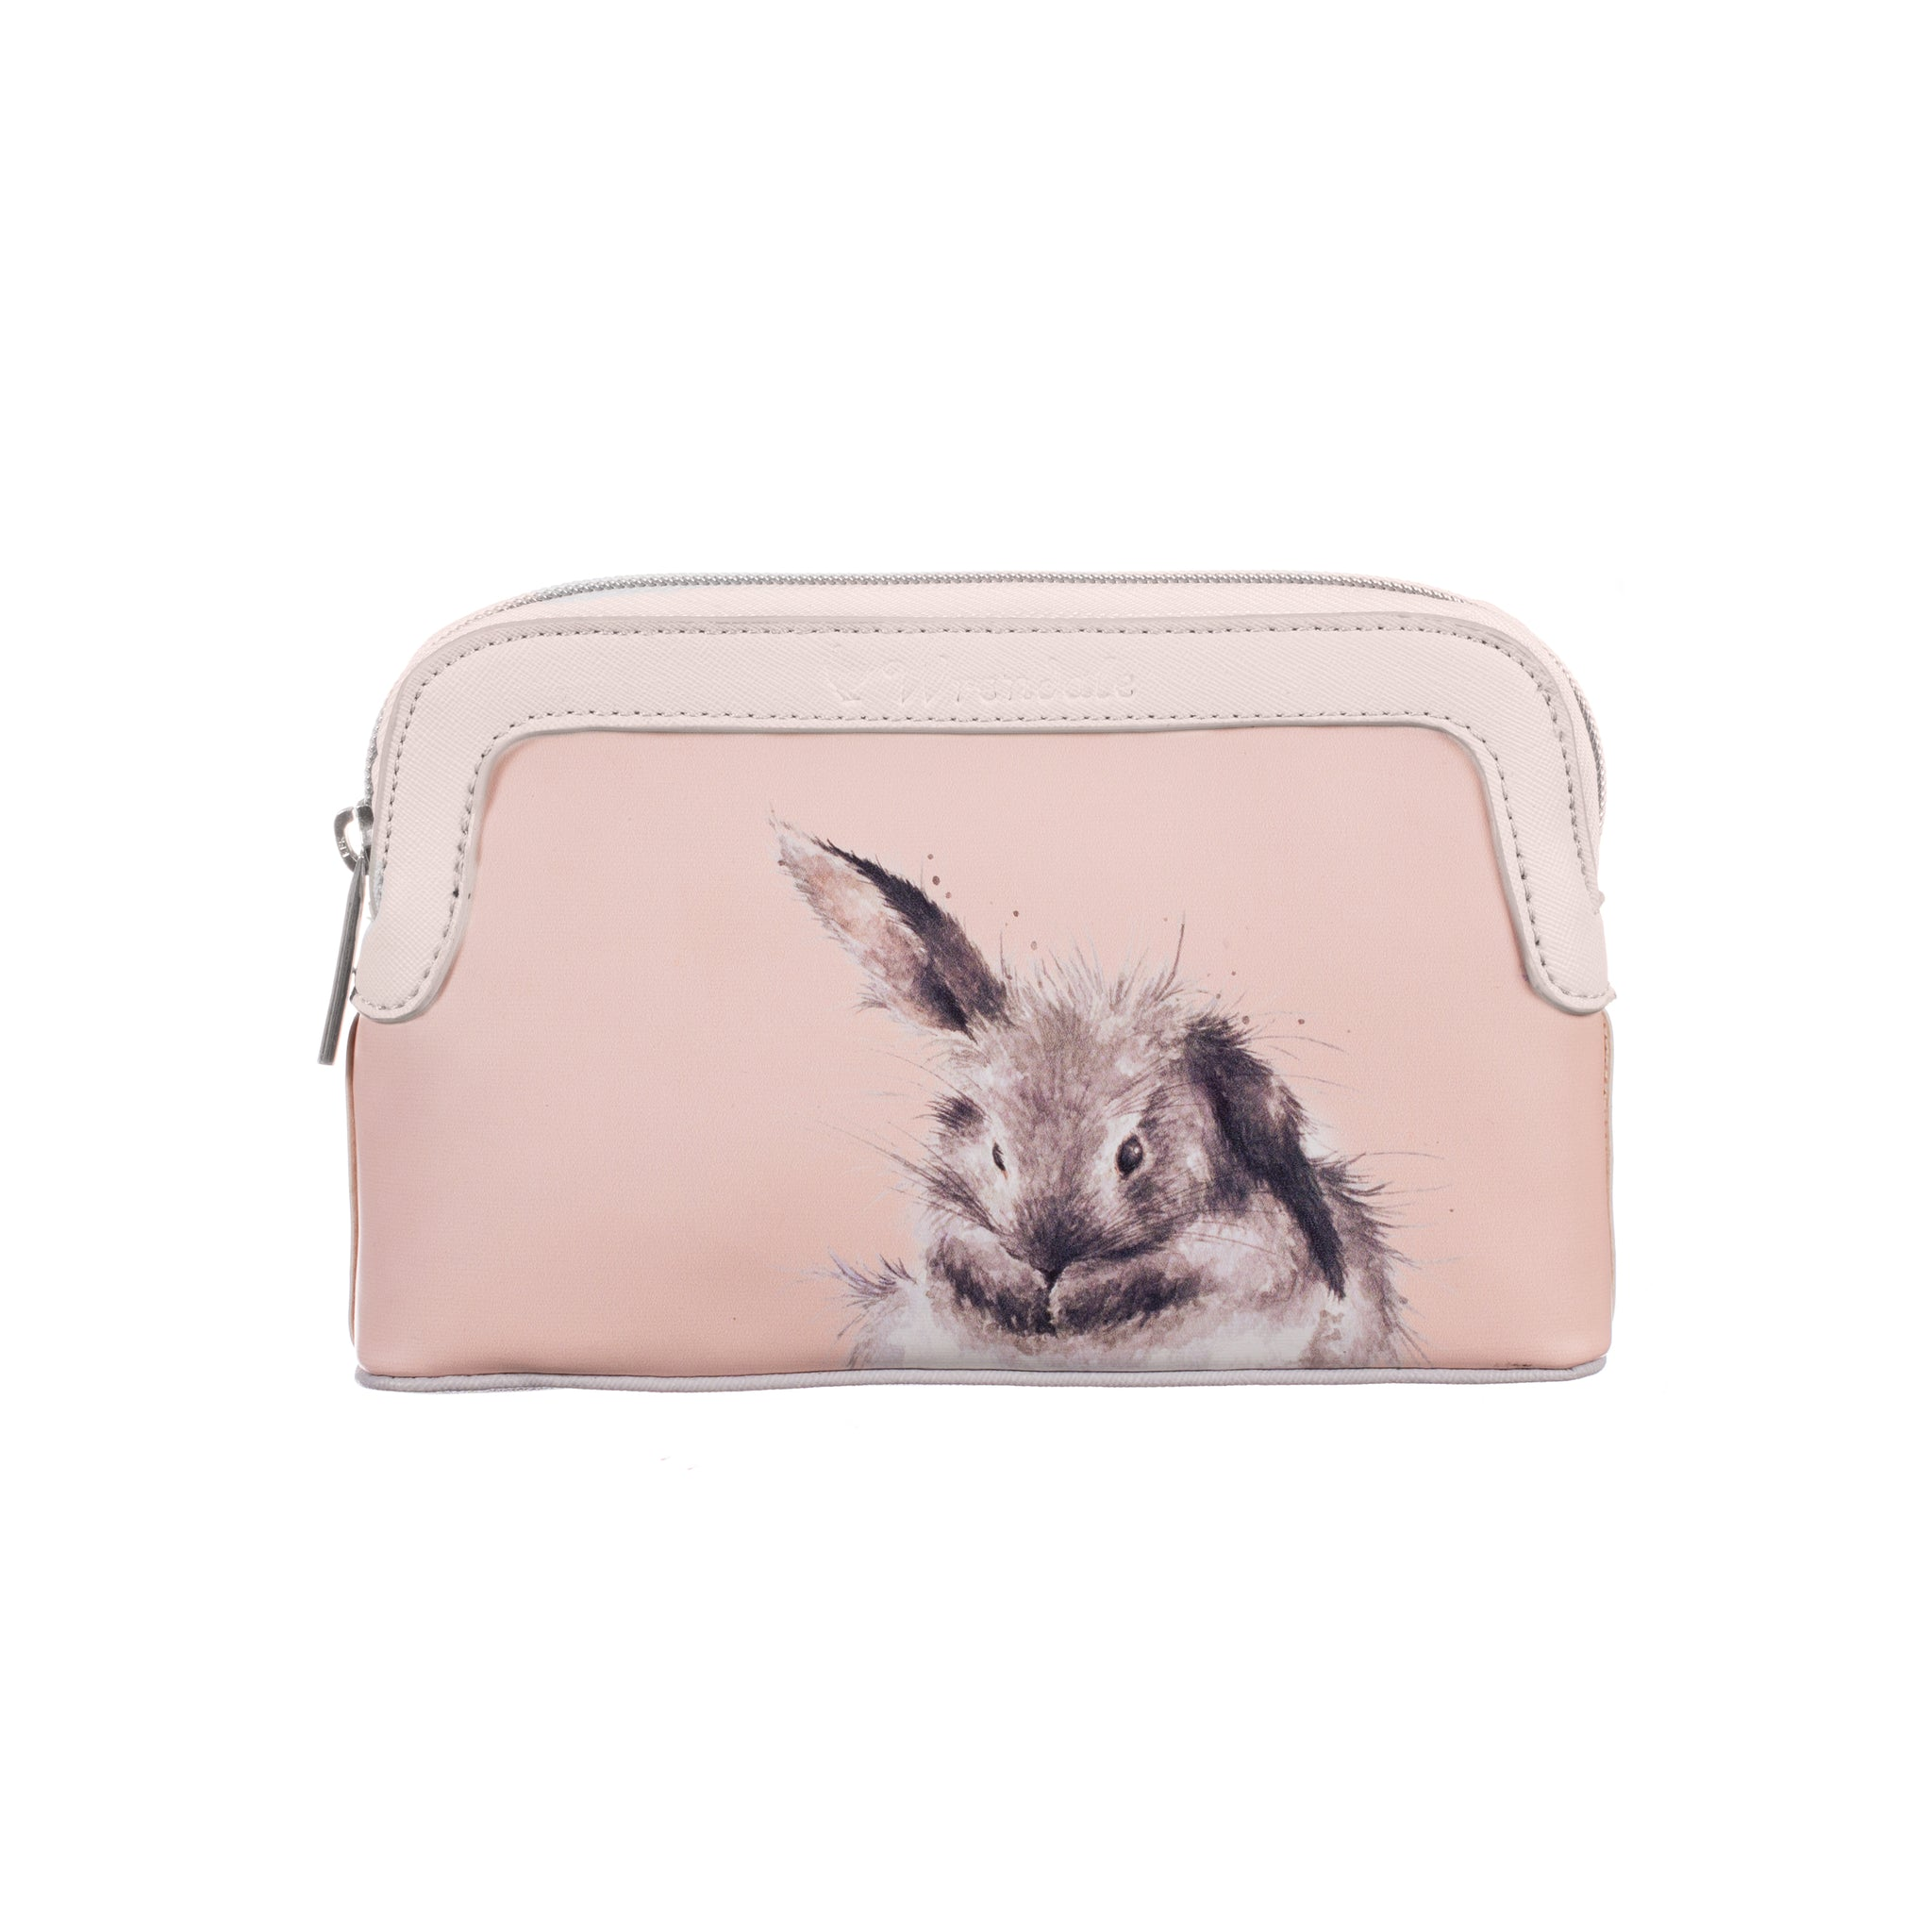 Wrendale Designs - Small Cosmetics Bag - Some Bunny